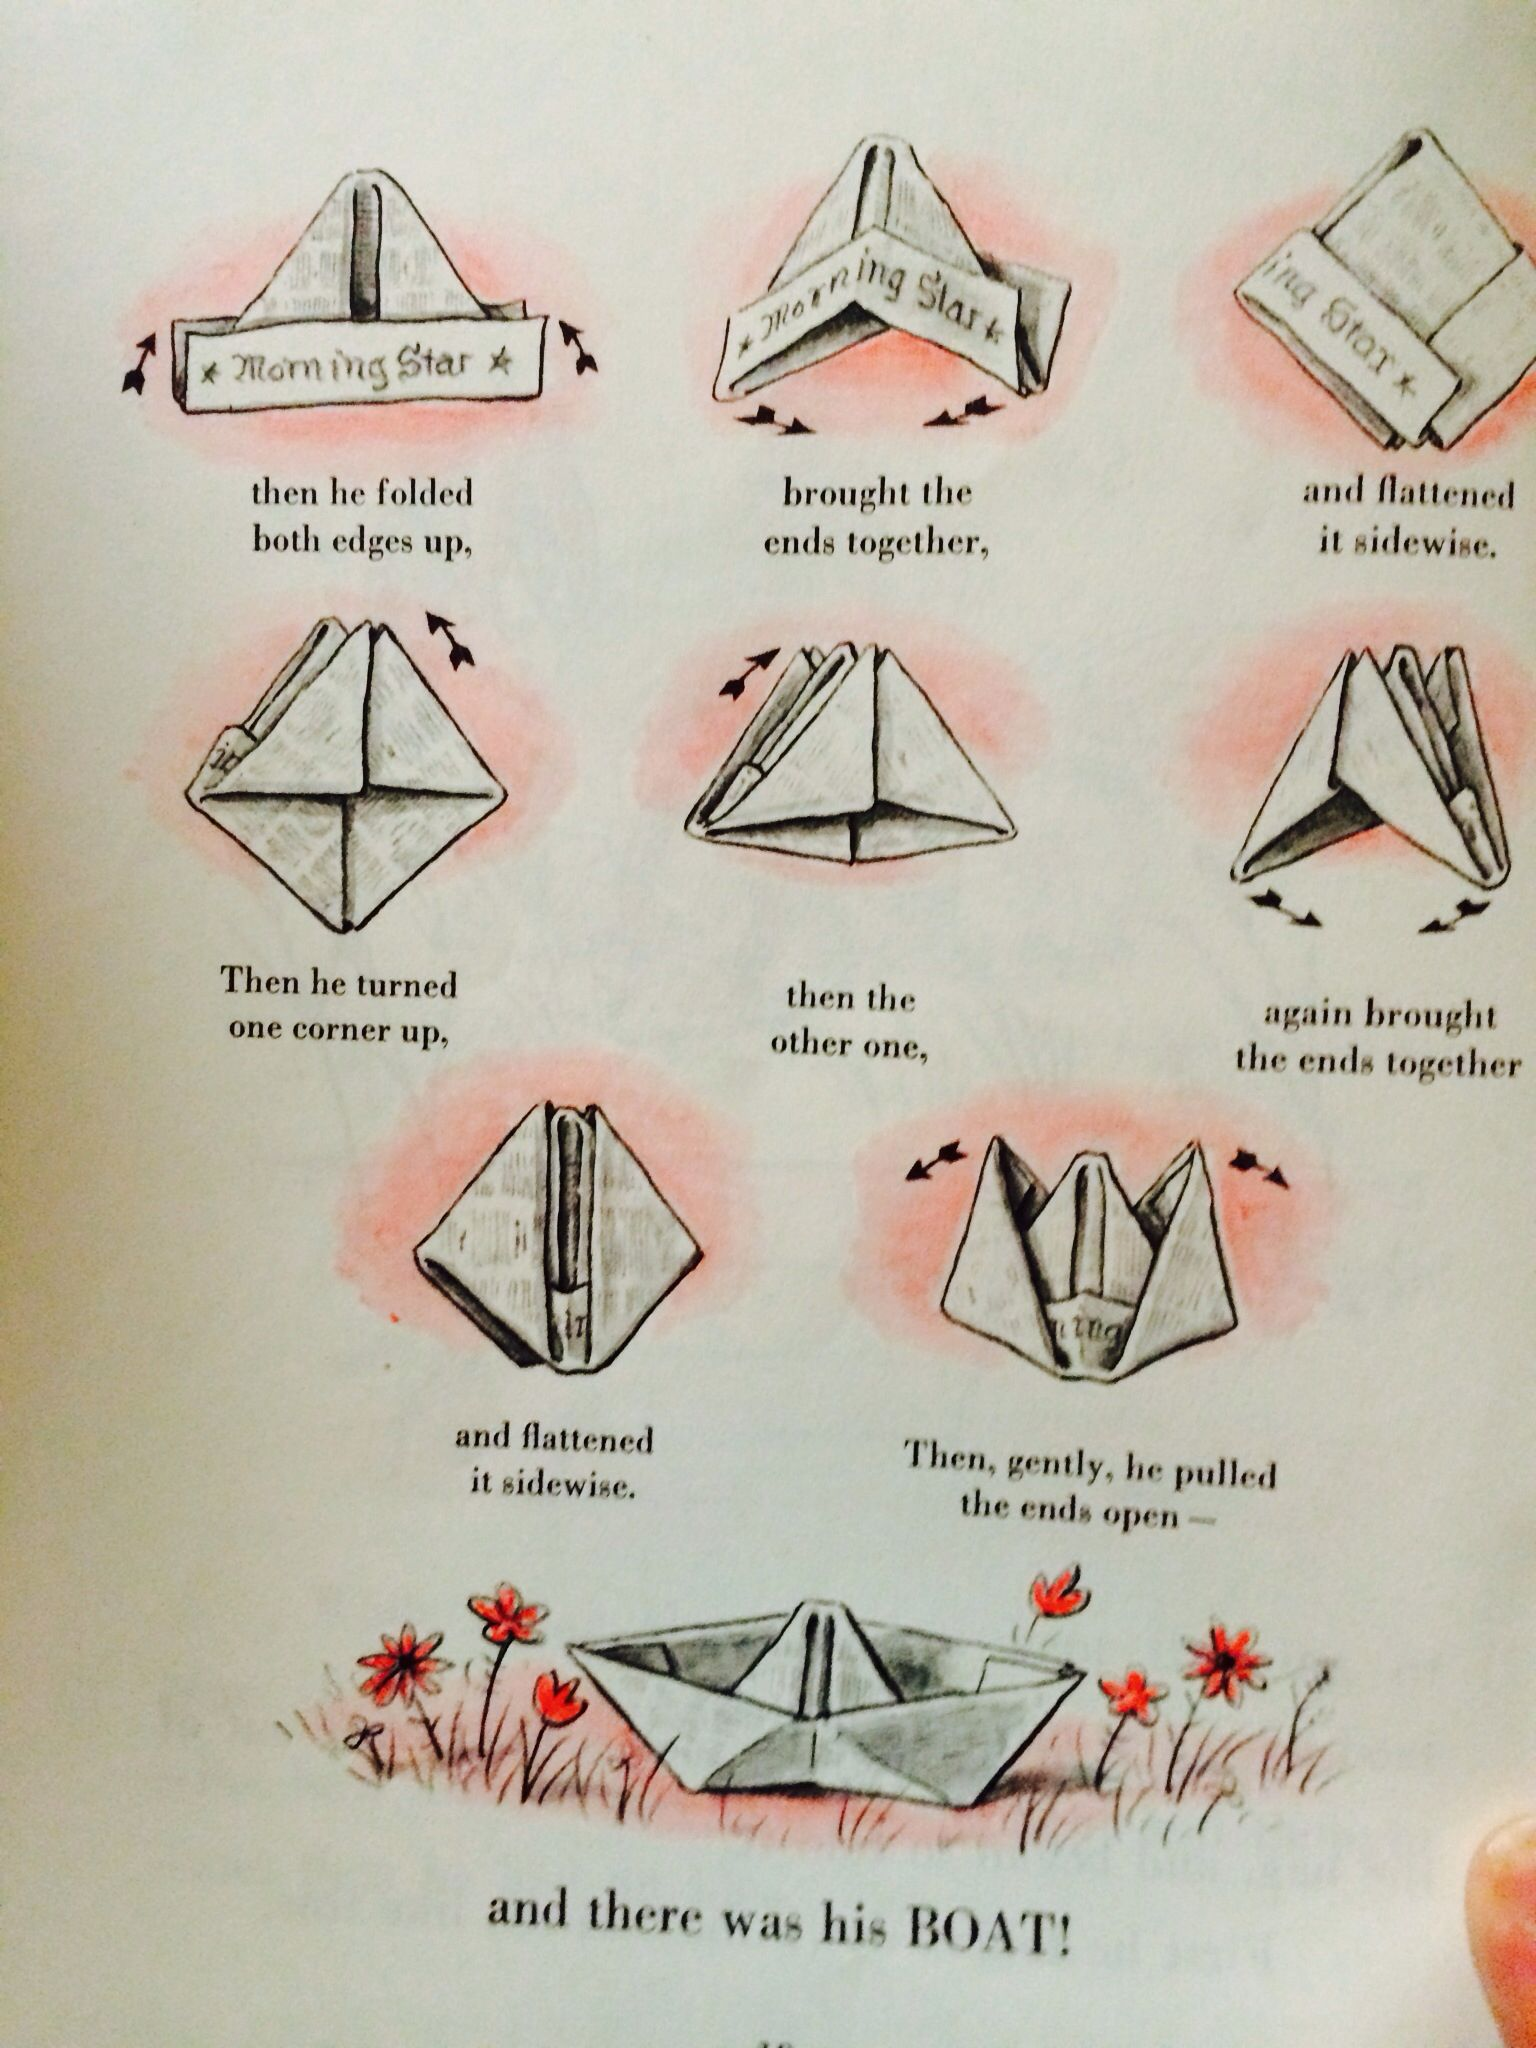 How To Make A Newspaper Boat Illustrations From The Book Curious